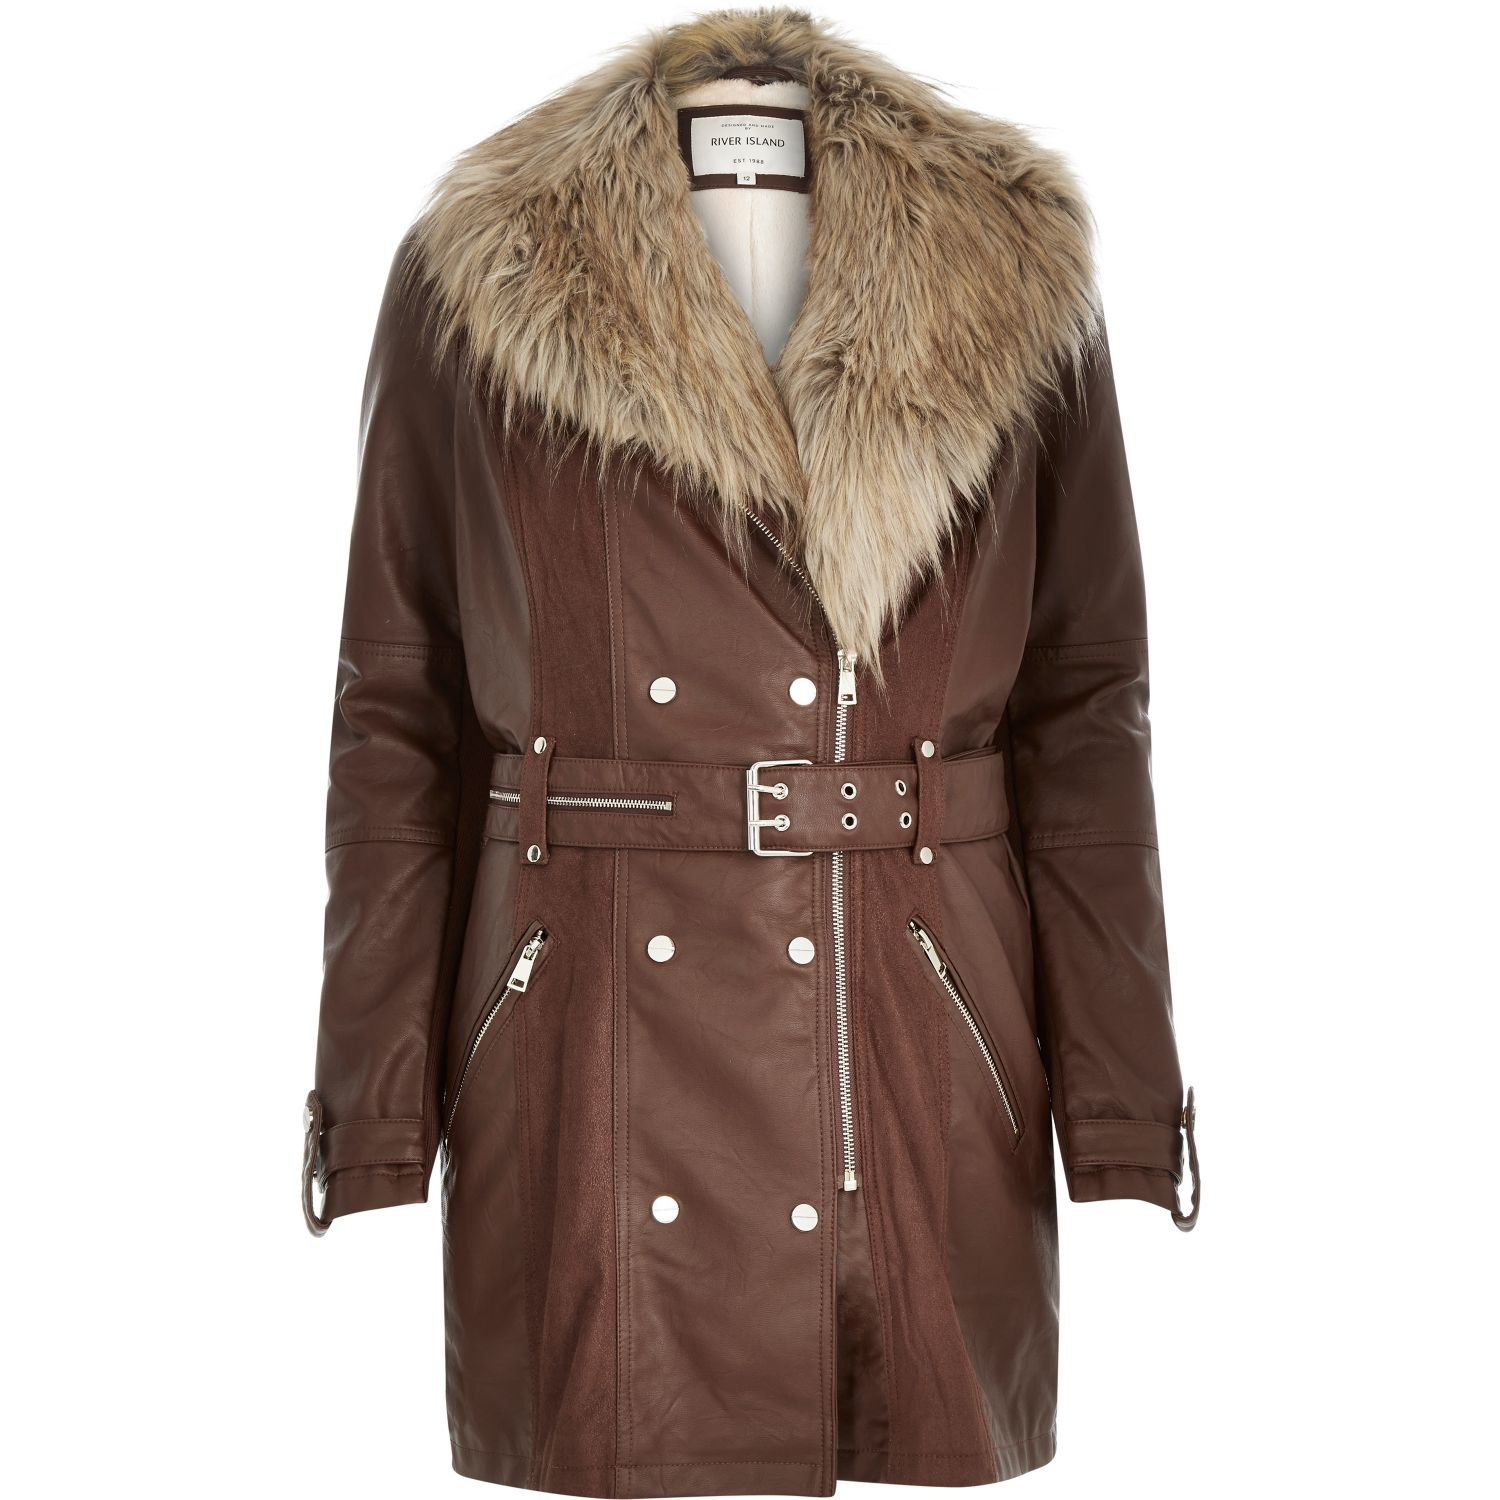 River Island Brown Belted Coat With Fur Collar